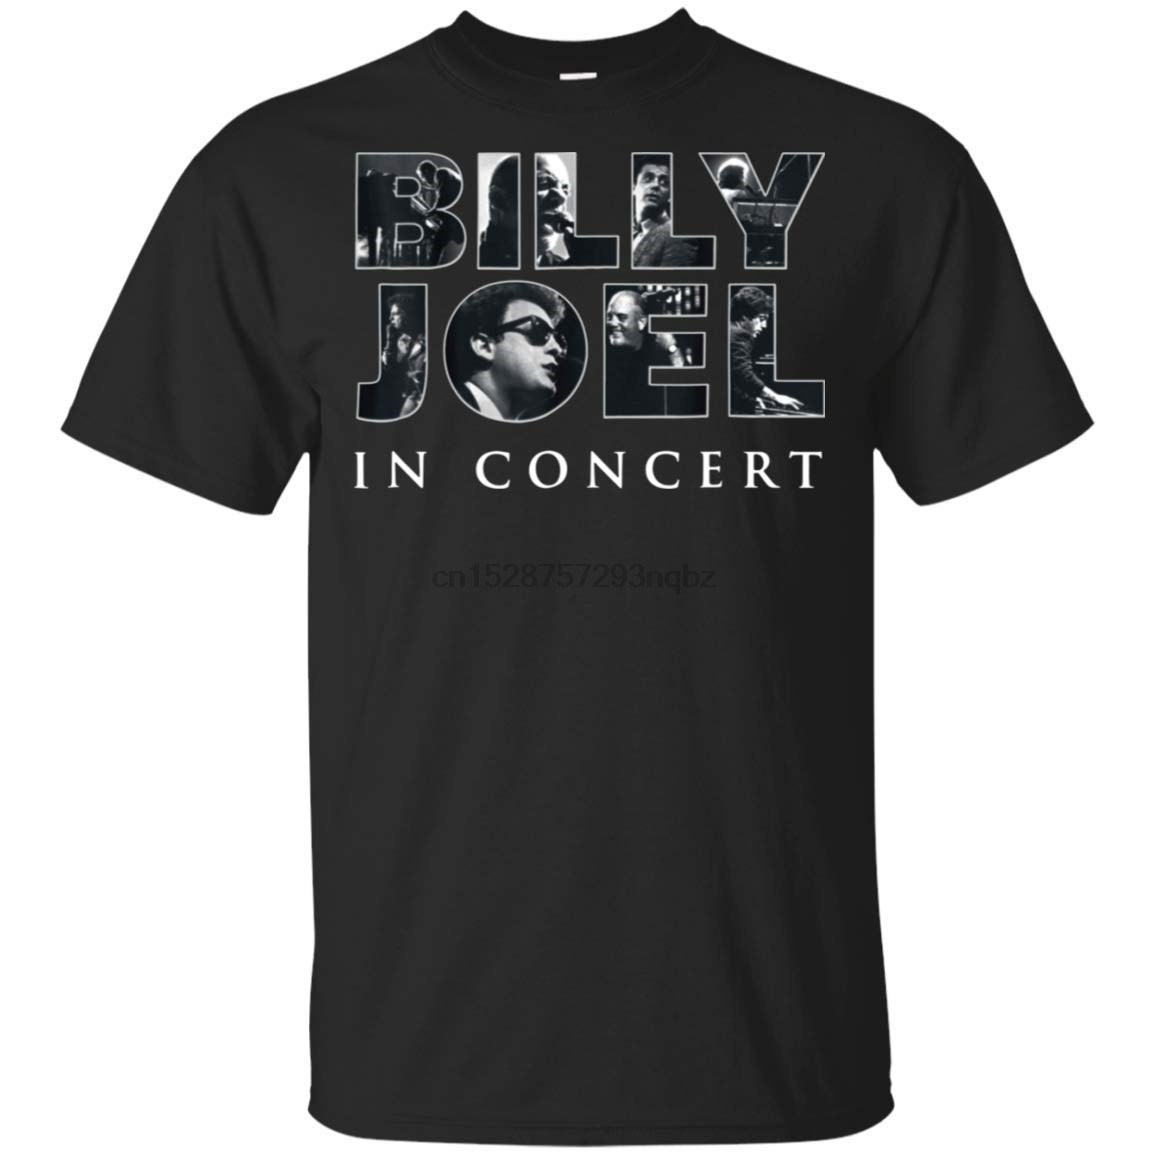 Billy Joel 2019 Tour Dates T Shirt for Men Idea for Fans Who Love Piano Man Men T Shirt Short Sleeve Round Neck image